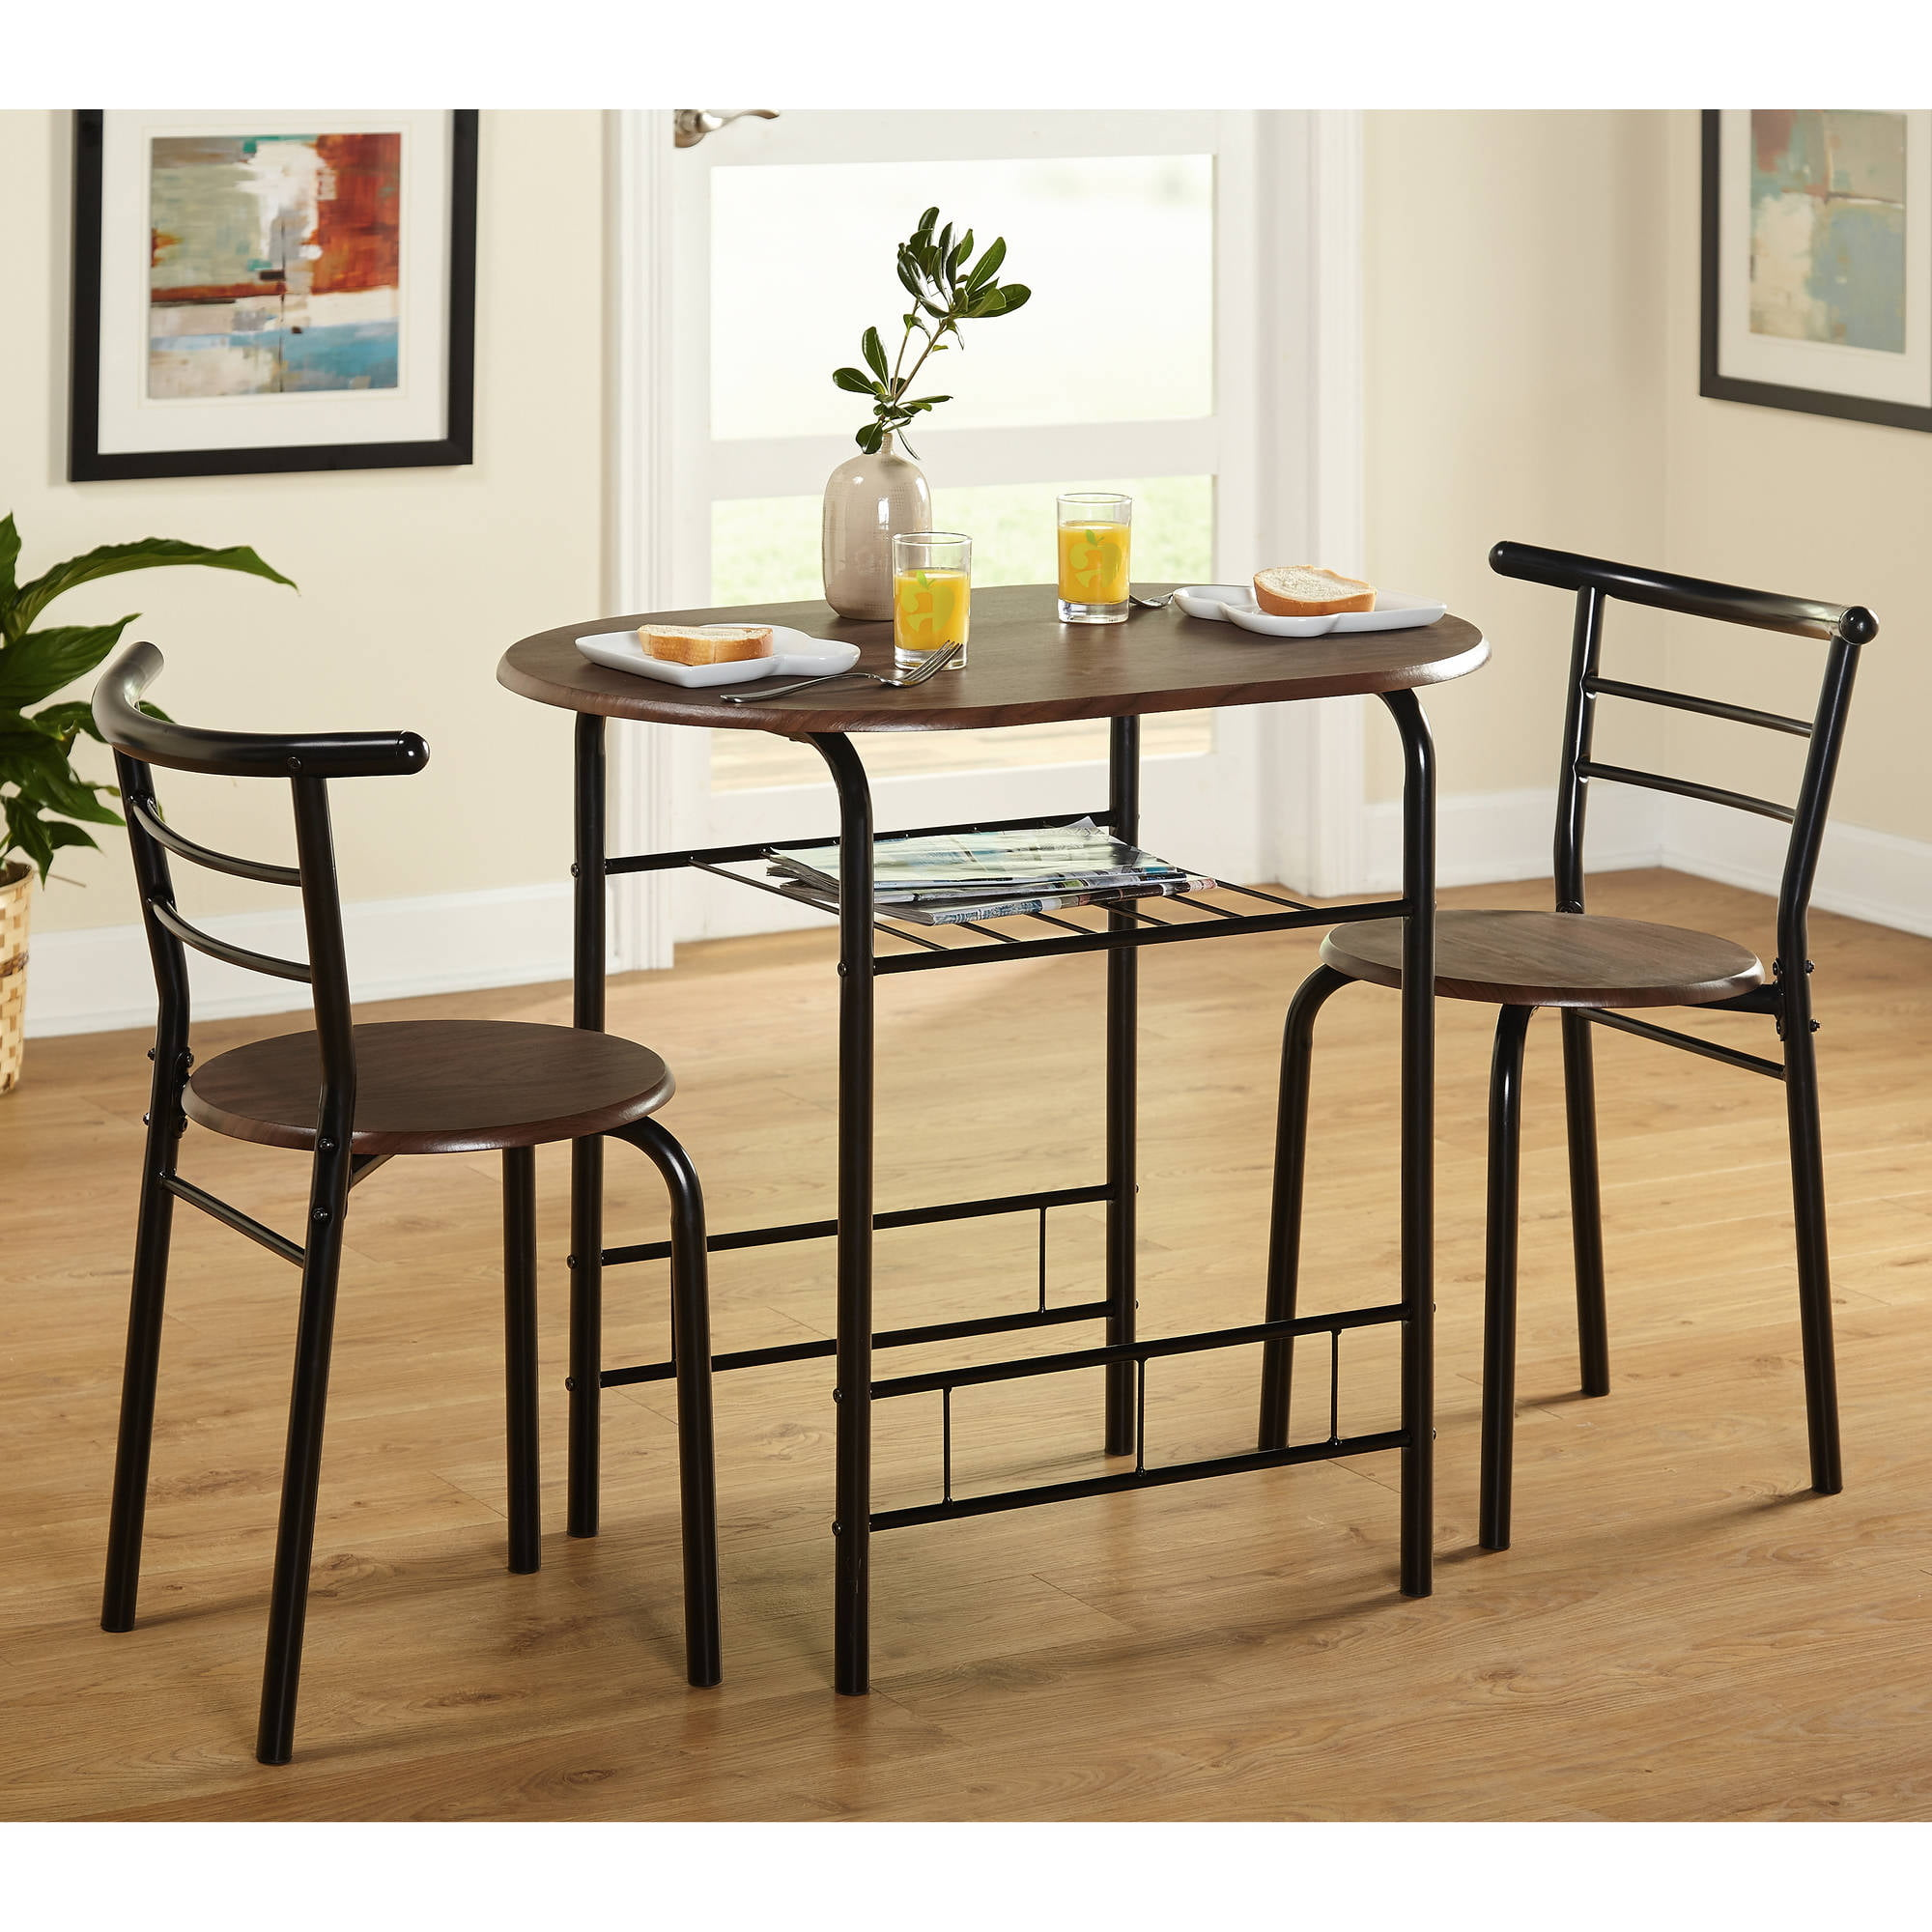 Marvelous Bistro Breakfast Table Part - 8: 3-Piece Bistro Set, Multiple Colors - Walmart.com